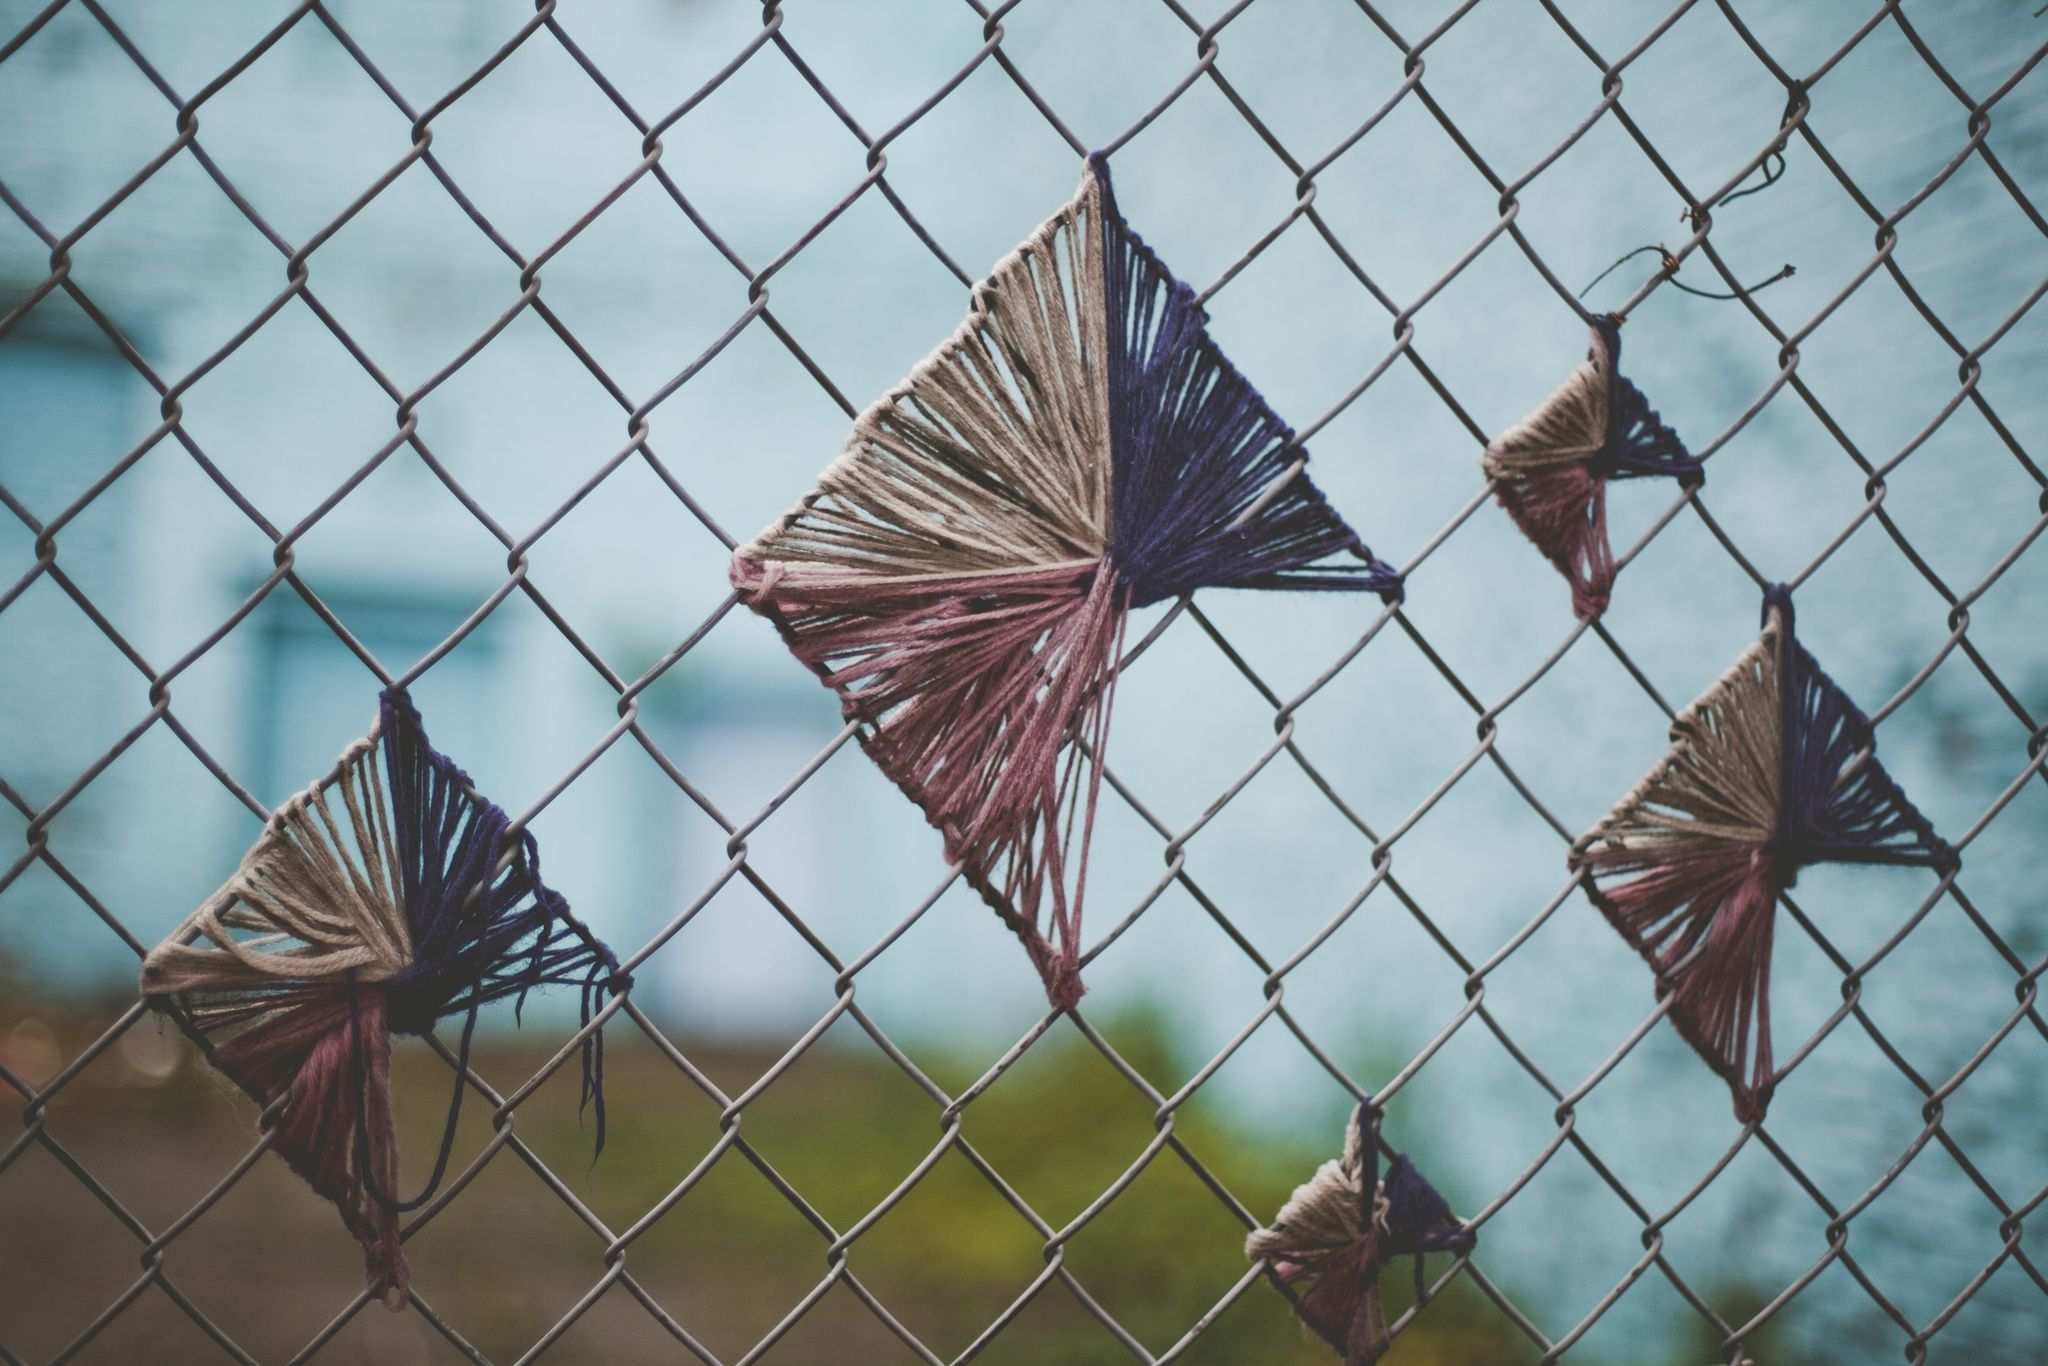 Chain link fence art lacing strings backyard garden